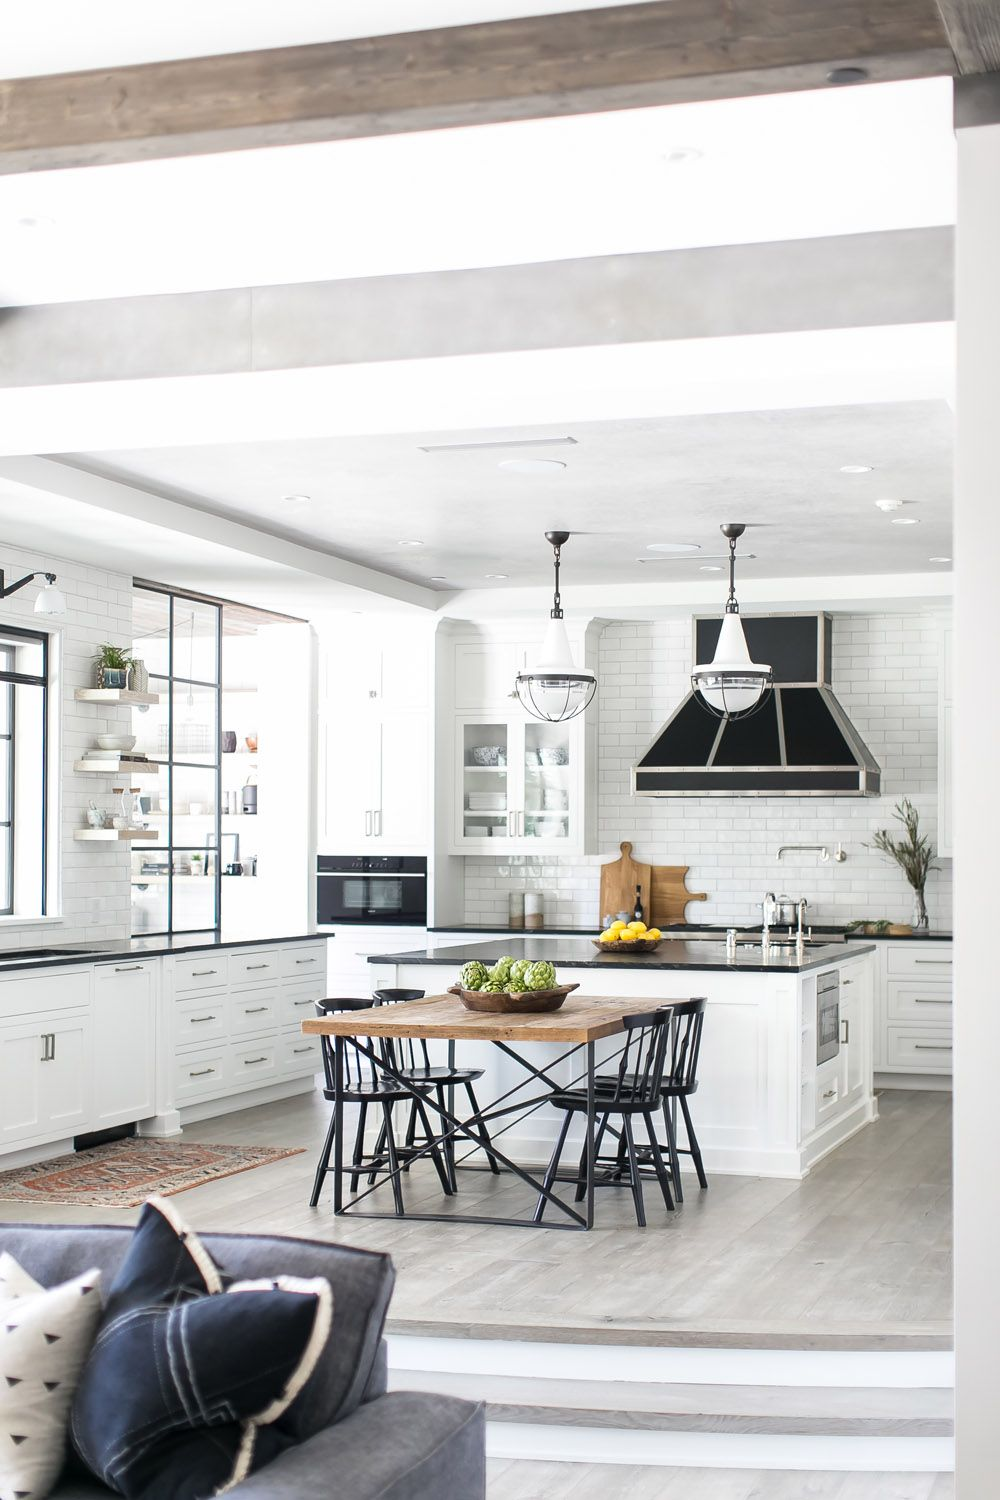 Manufactured Home Decorating Ideas Modern Country And Industrial: A Modern, Industrial, And Family-First Home